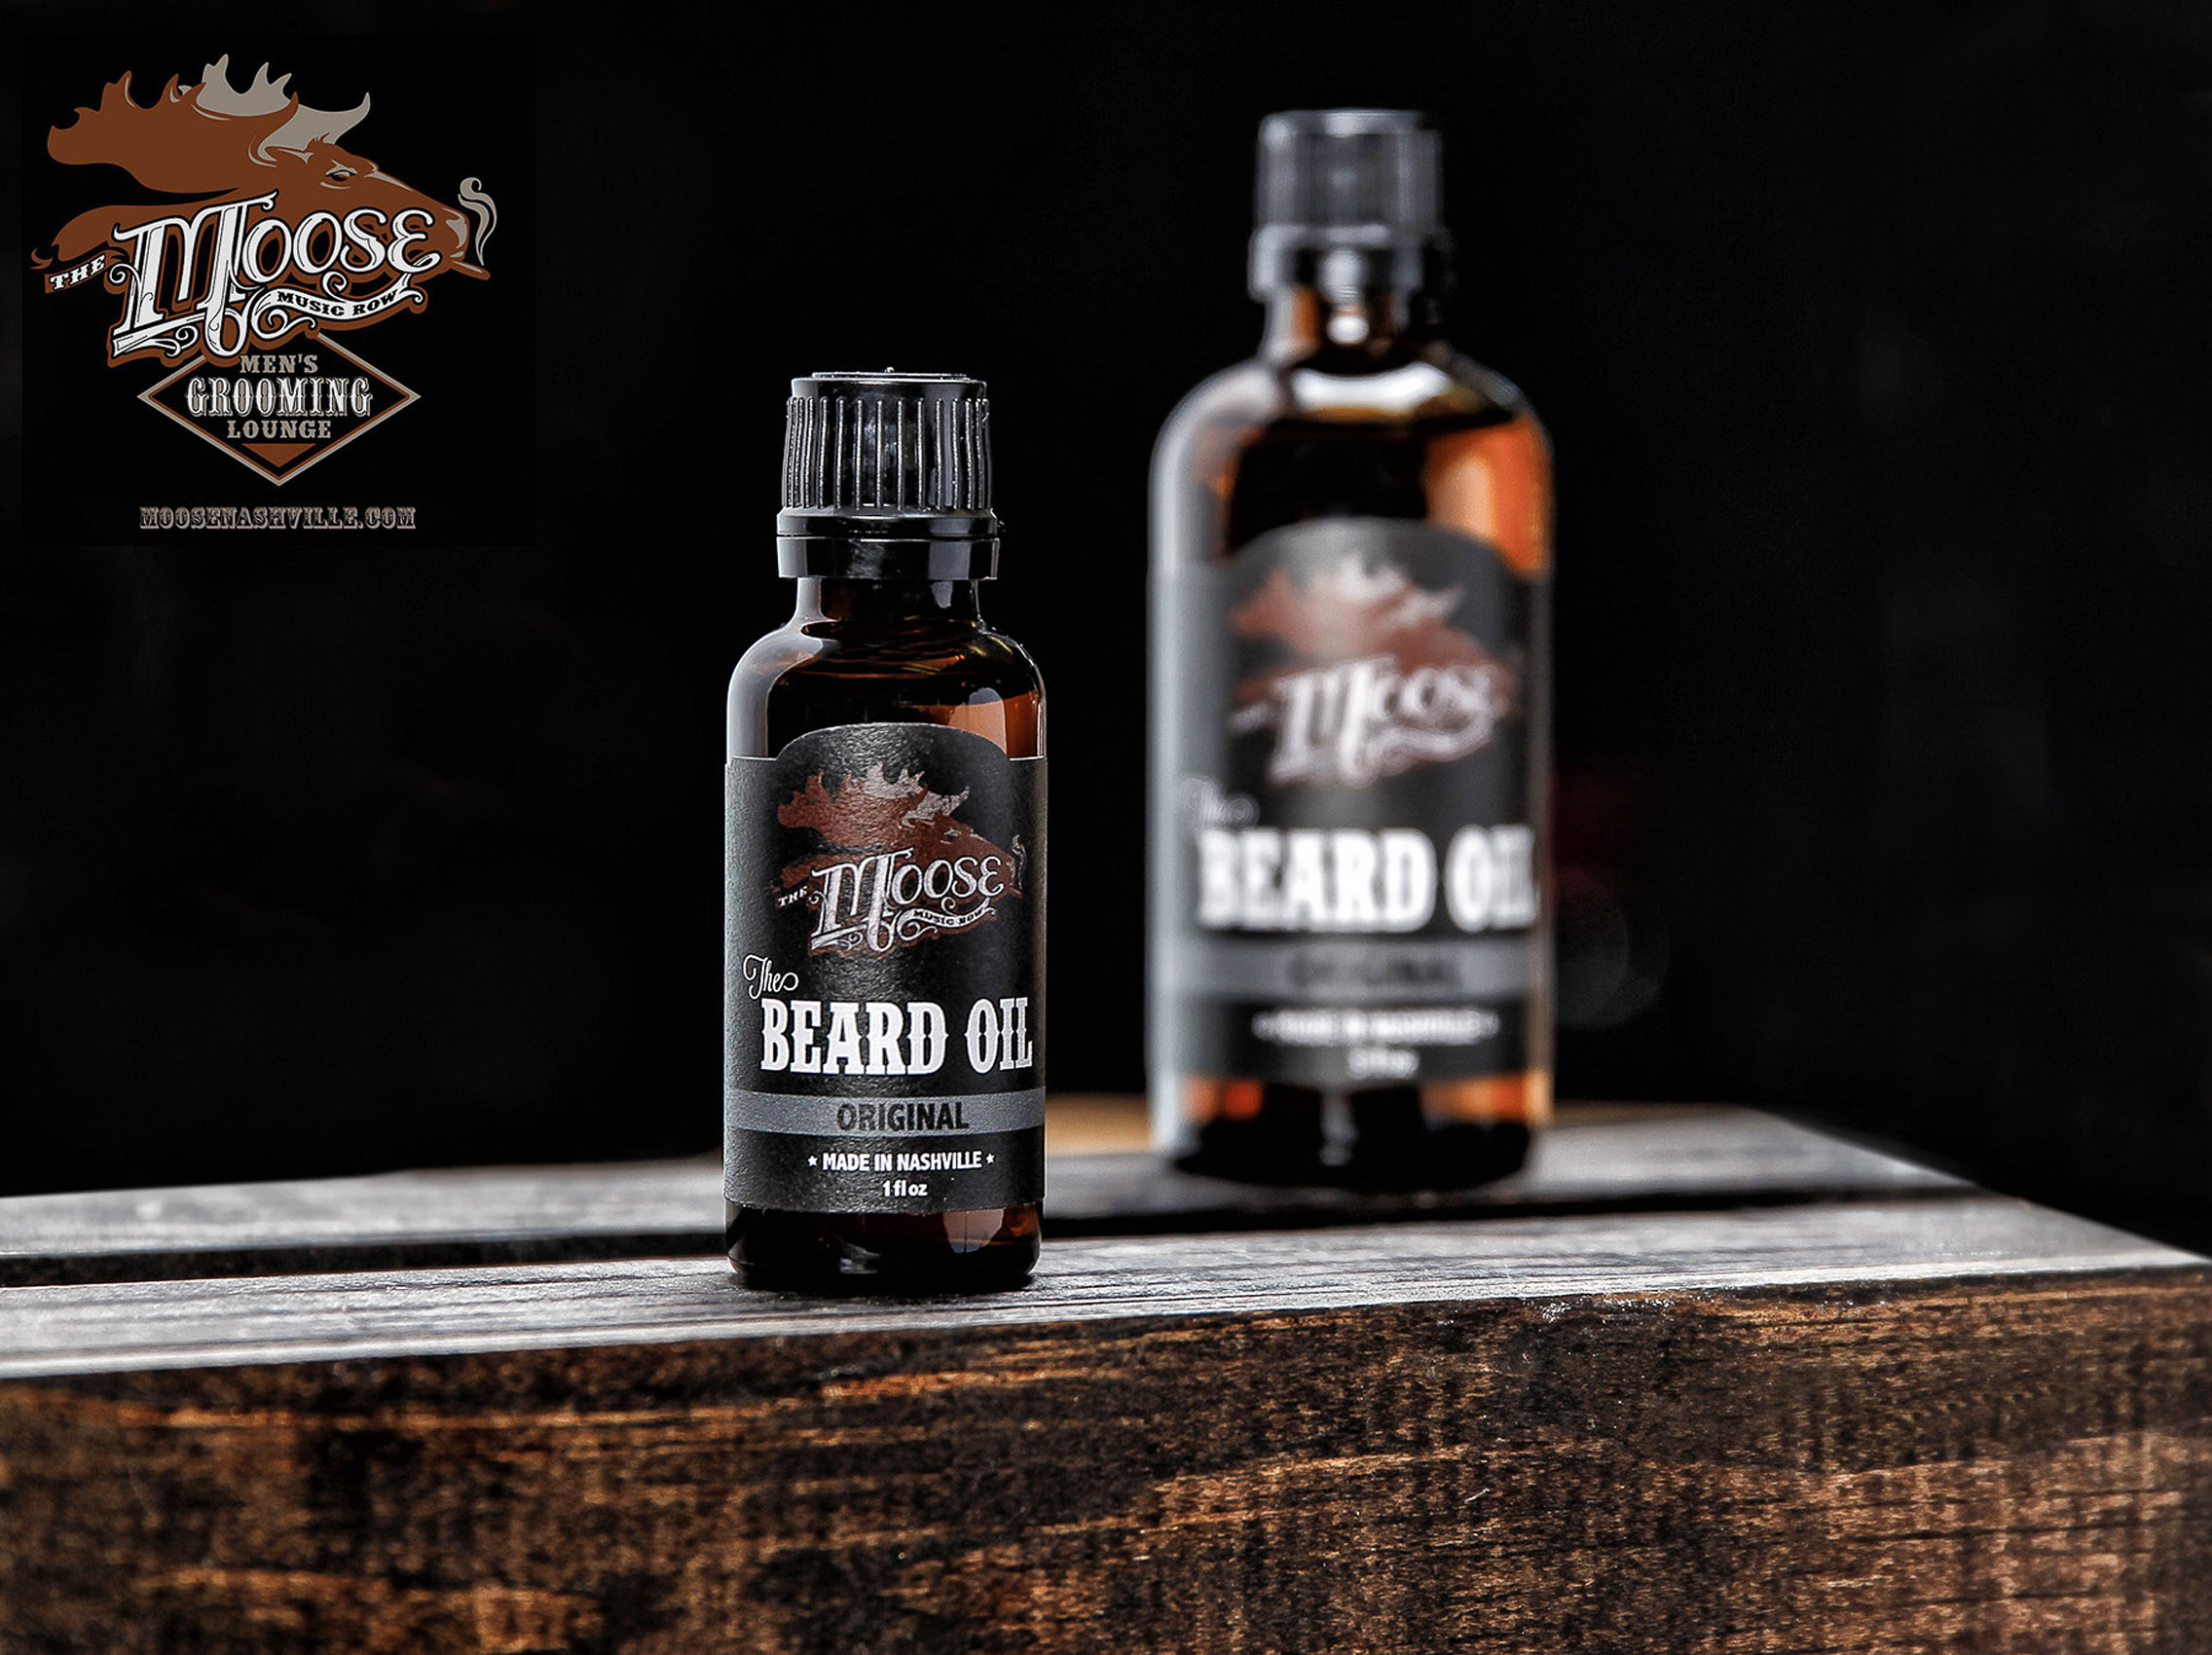 Moose Beard oil